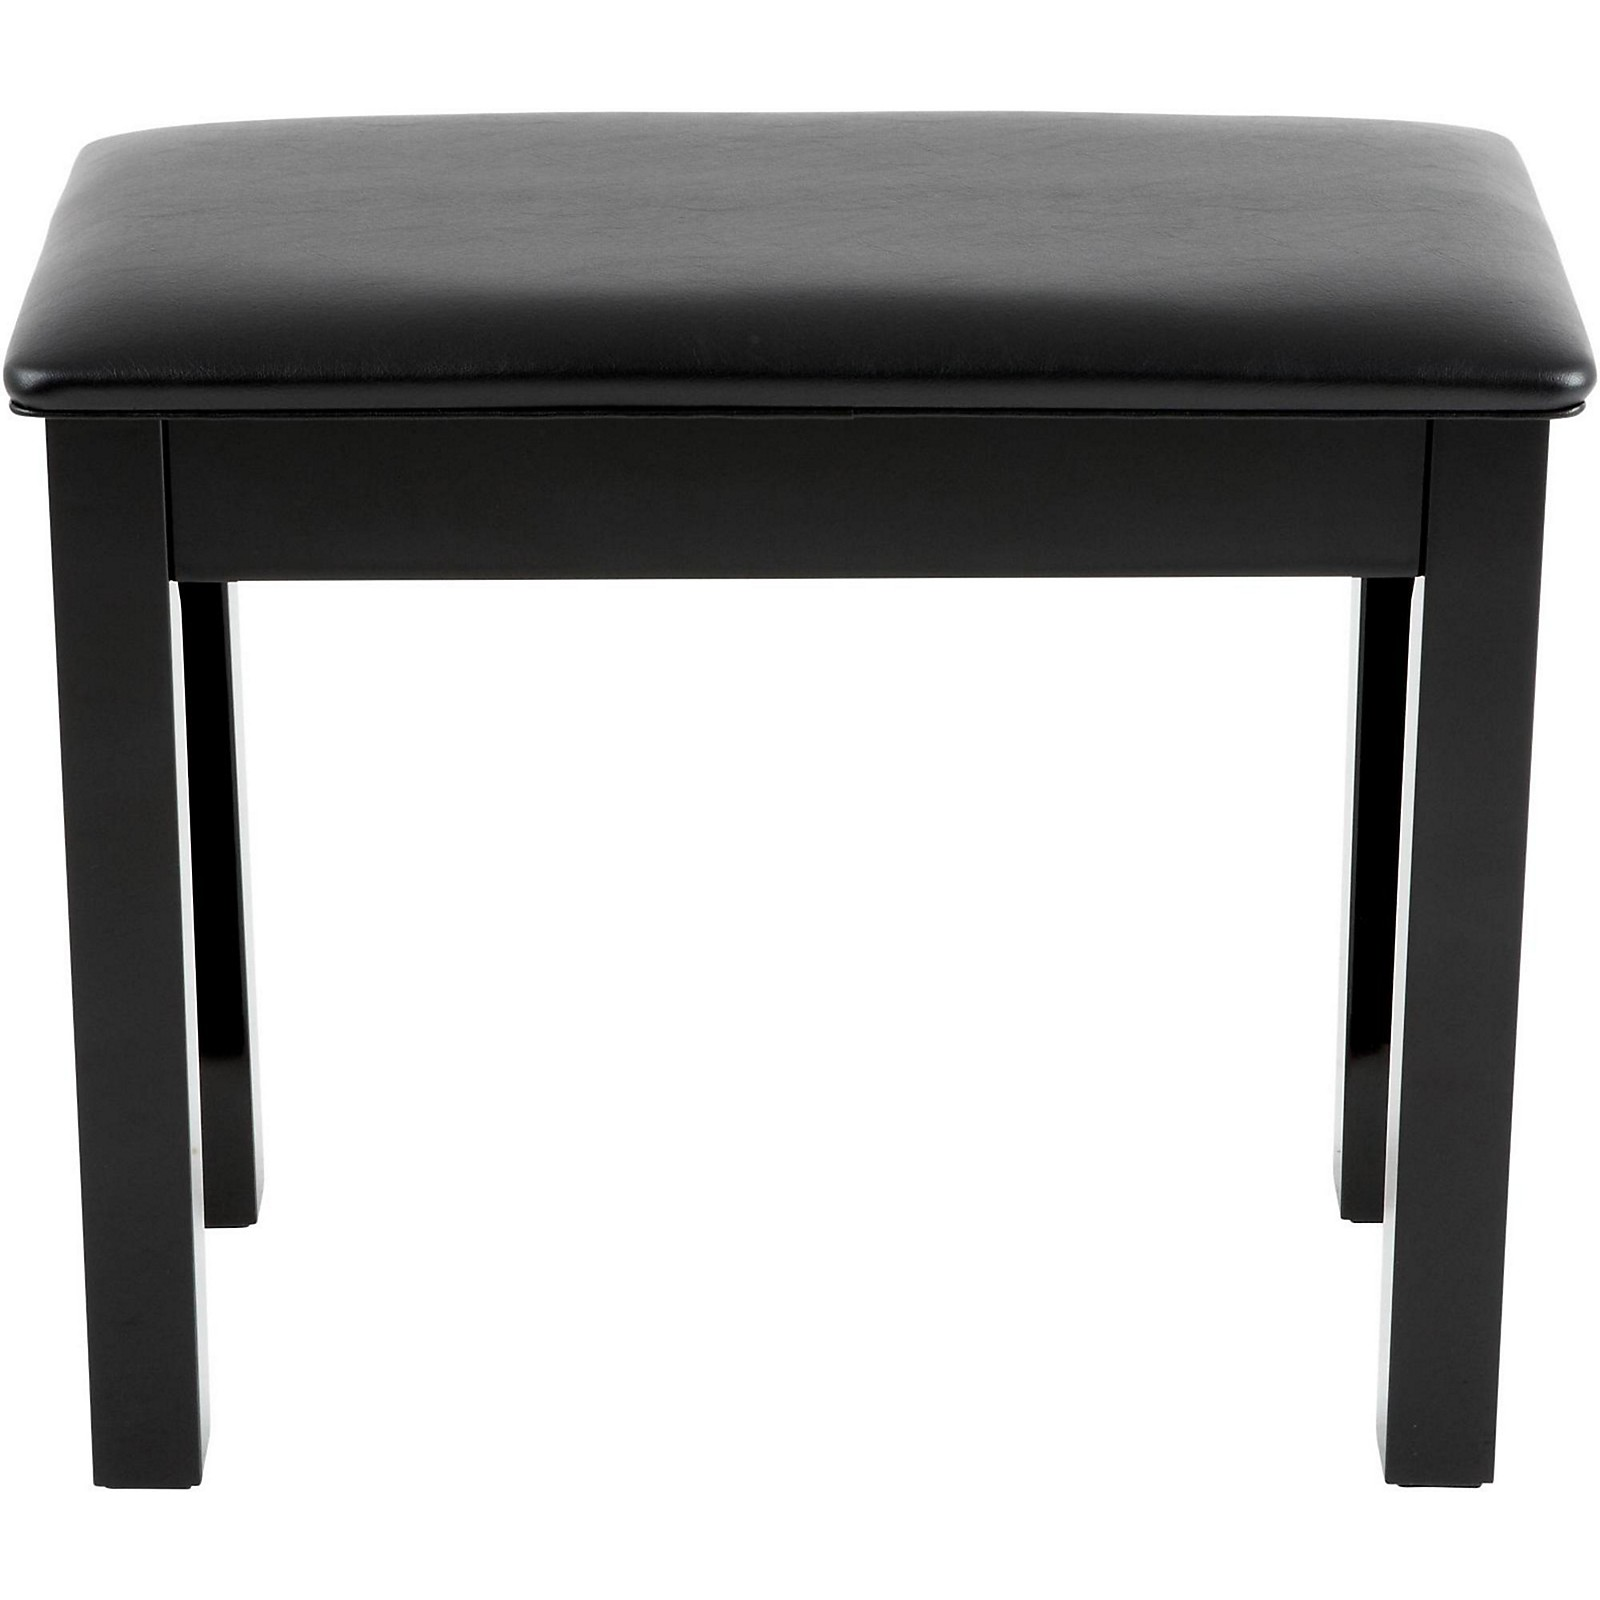 Williams WPB Piano Bench